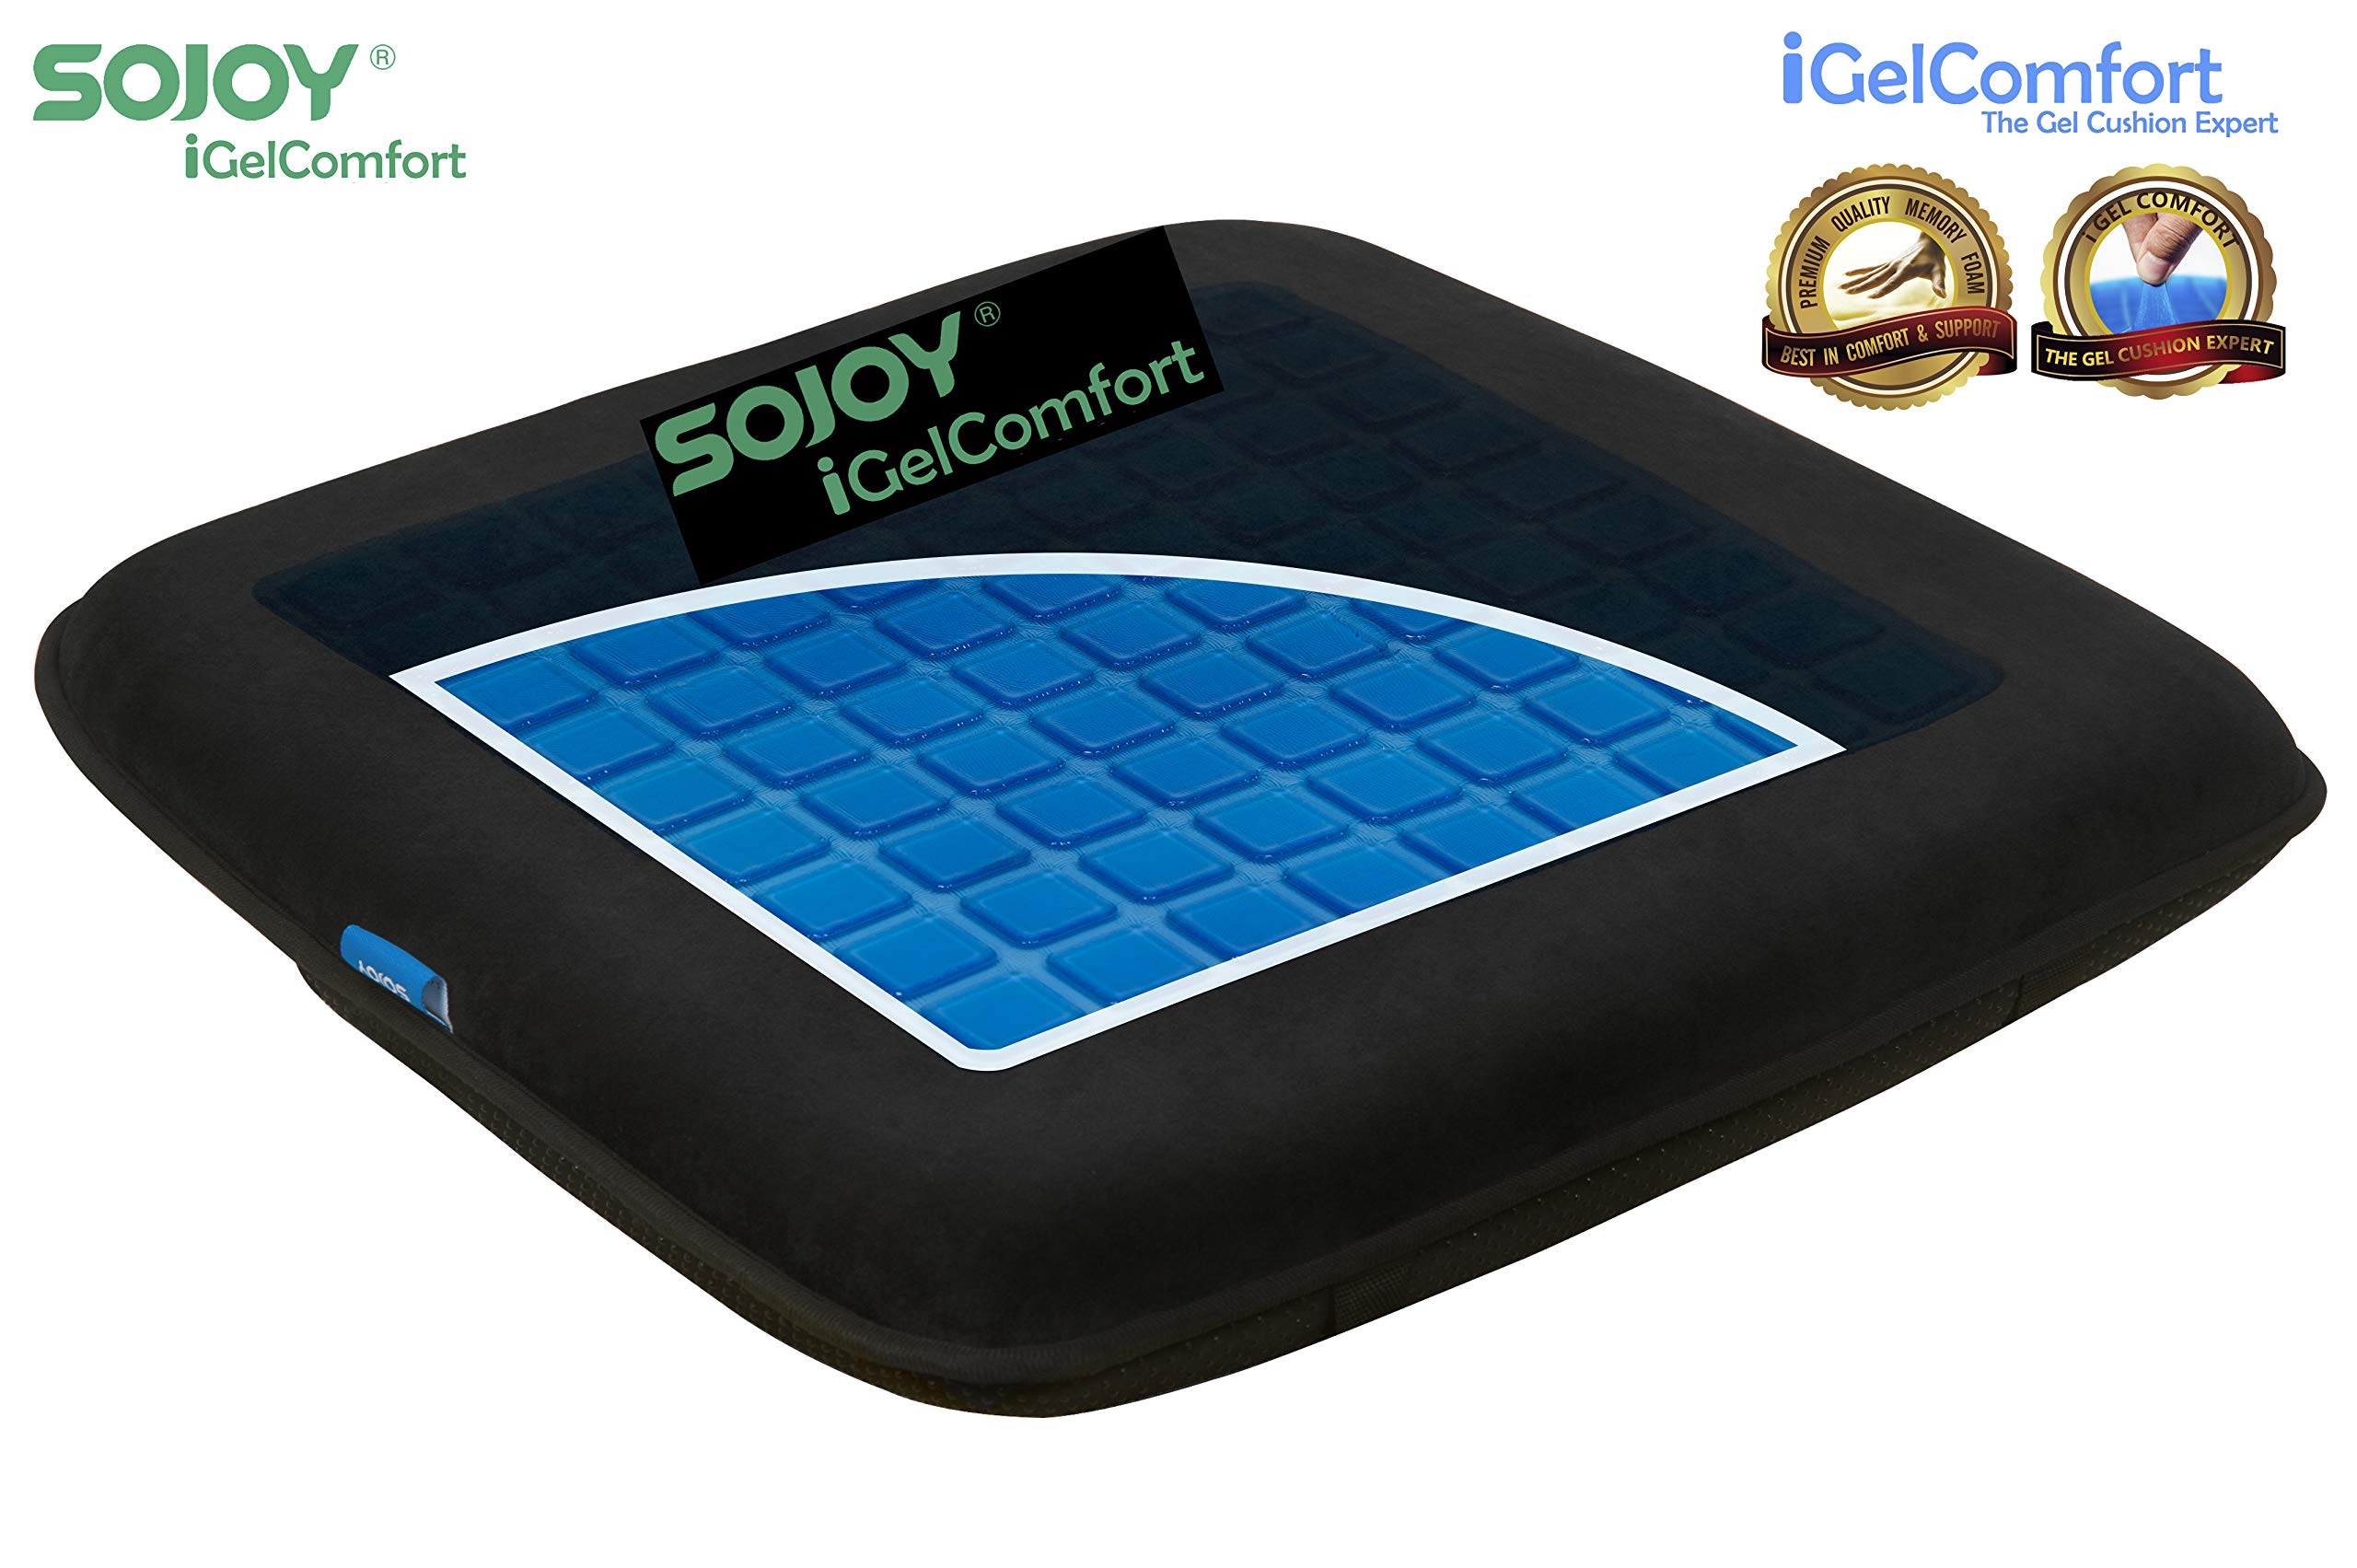 Sojoy iGelComfort Enhanced Multi-Use (Car/Office/Truck/Home/Wheelchairs/Outside) Gel Seat Cushion with Memory Foam (Black) (16x16x2)